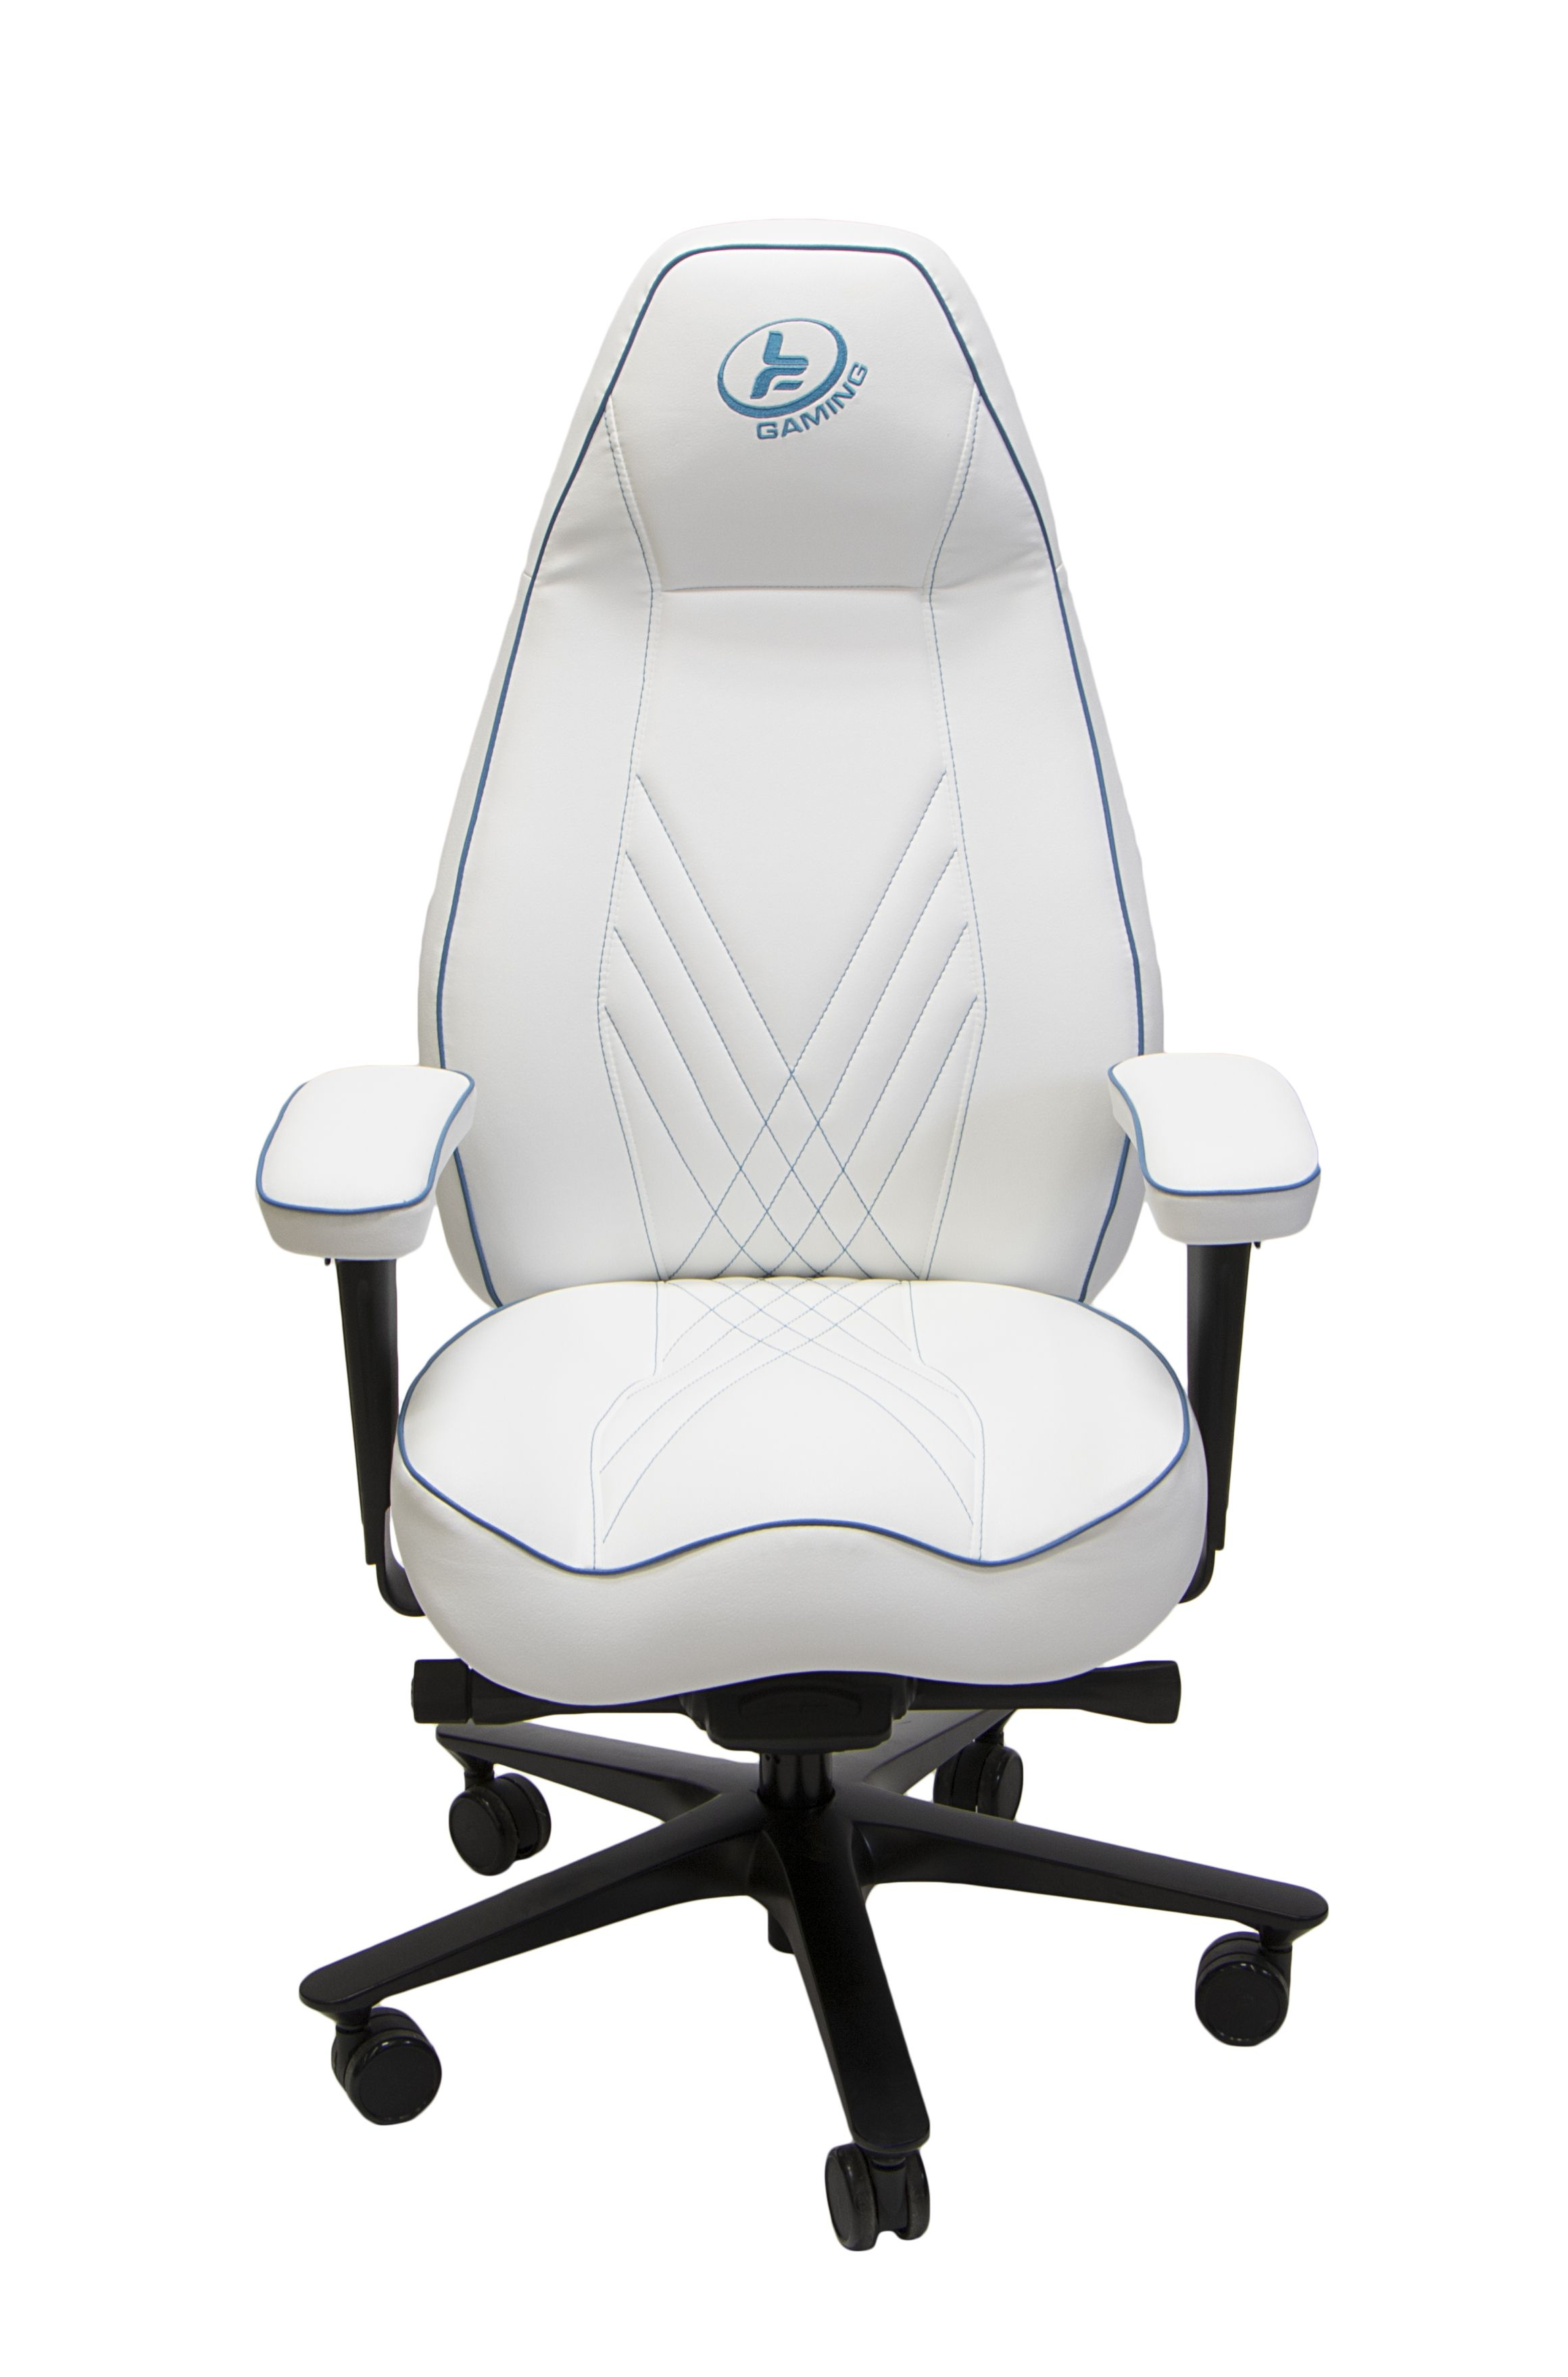 Engineered for long hours of sitting at work or at play